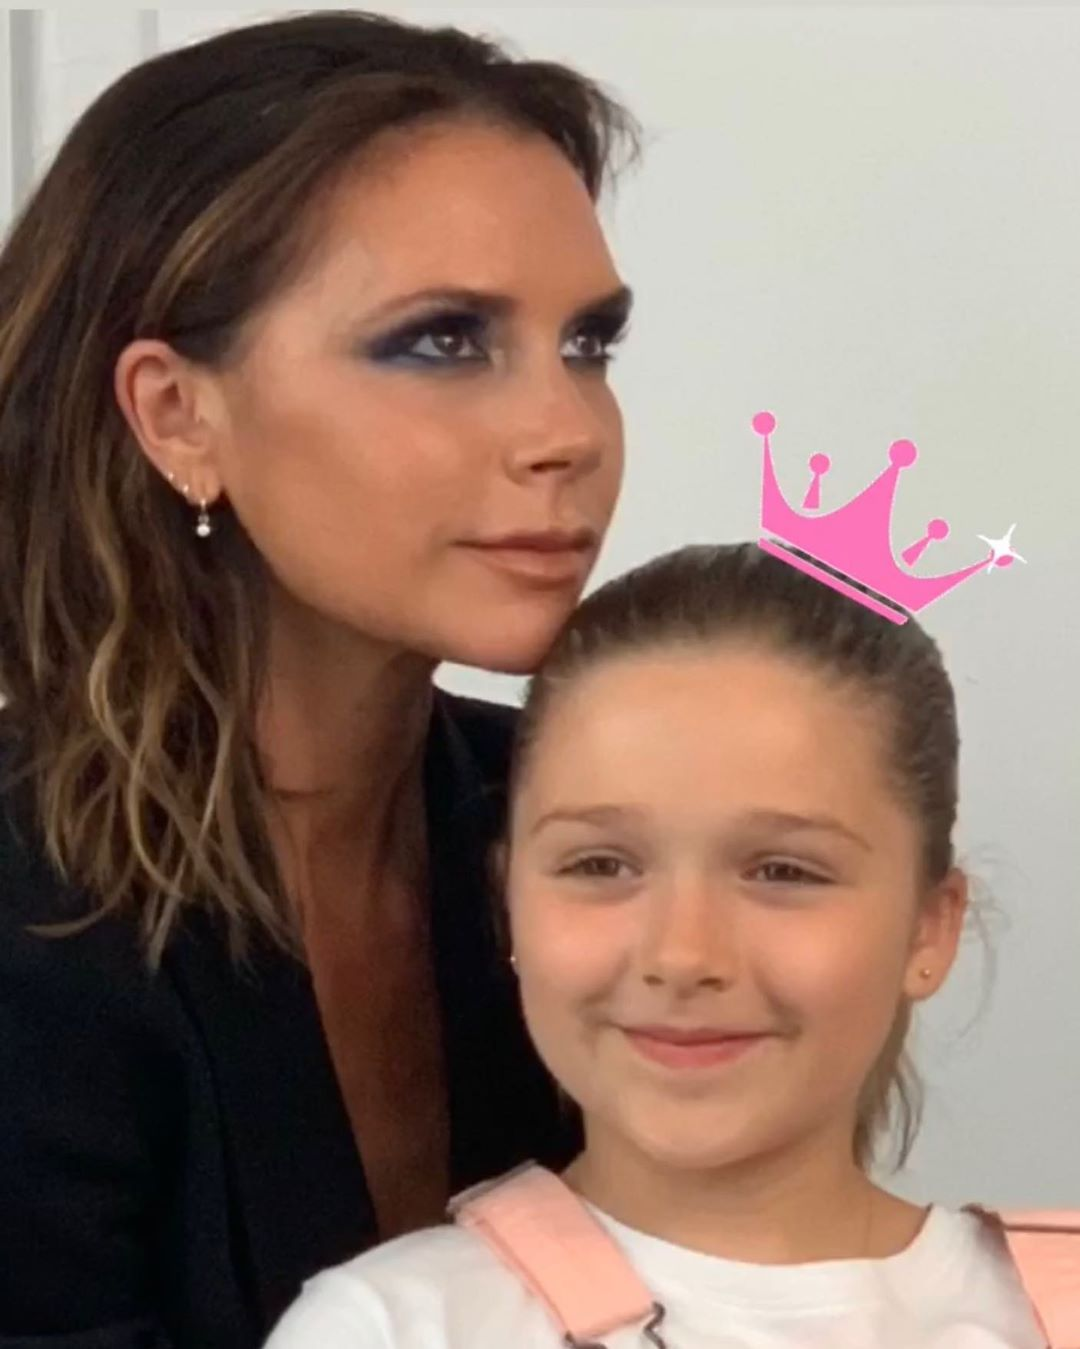 Victoria Beckham Instagram: Today I had a little guest on set! Shooting  with mummy kisses x VB...